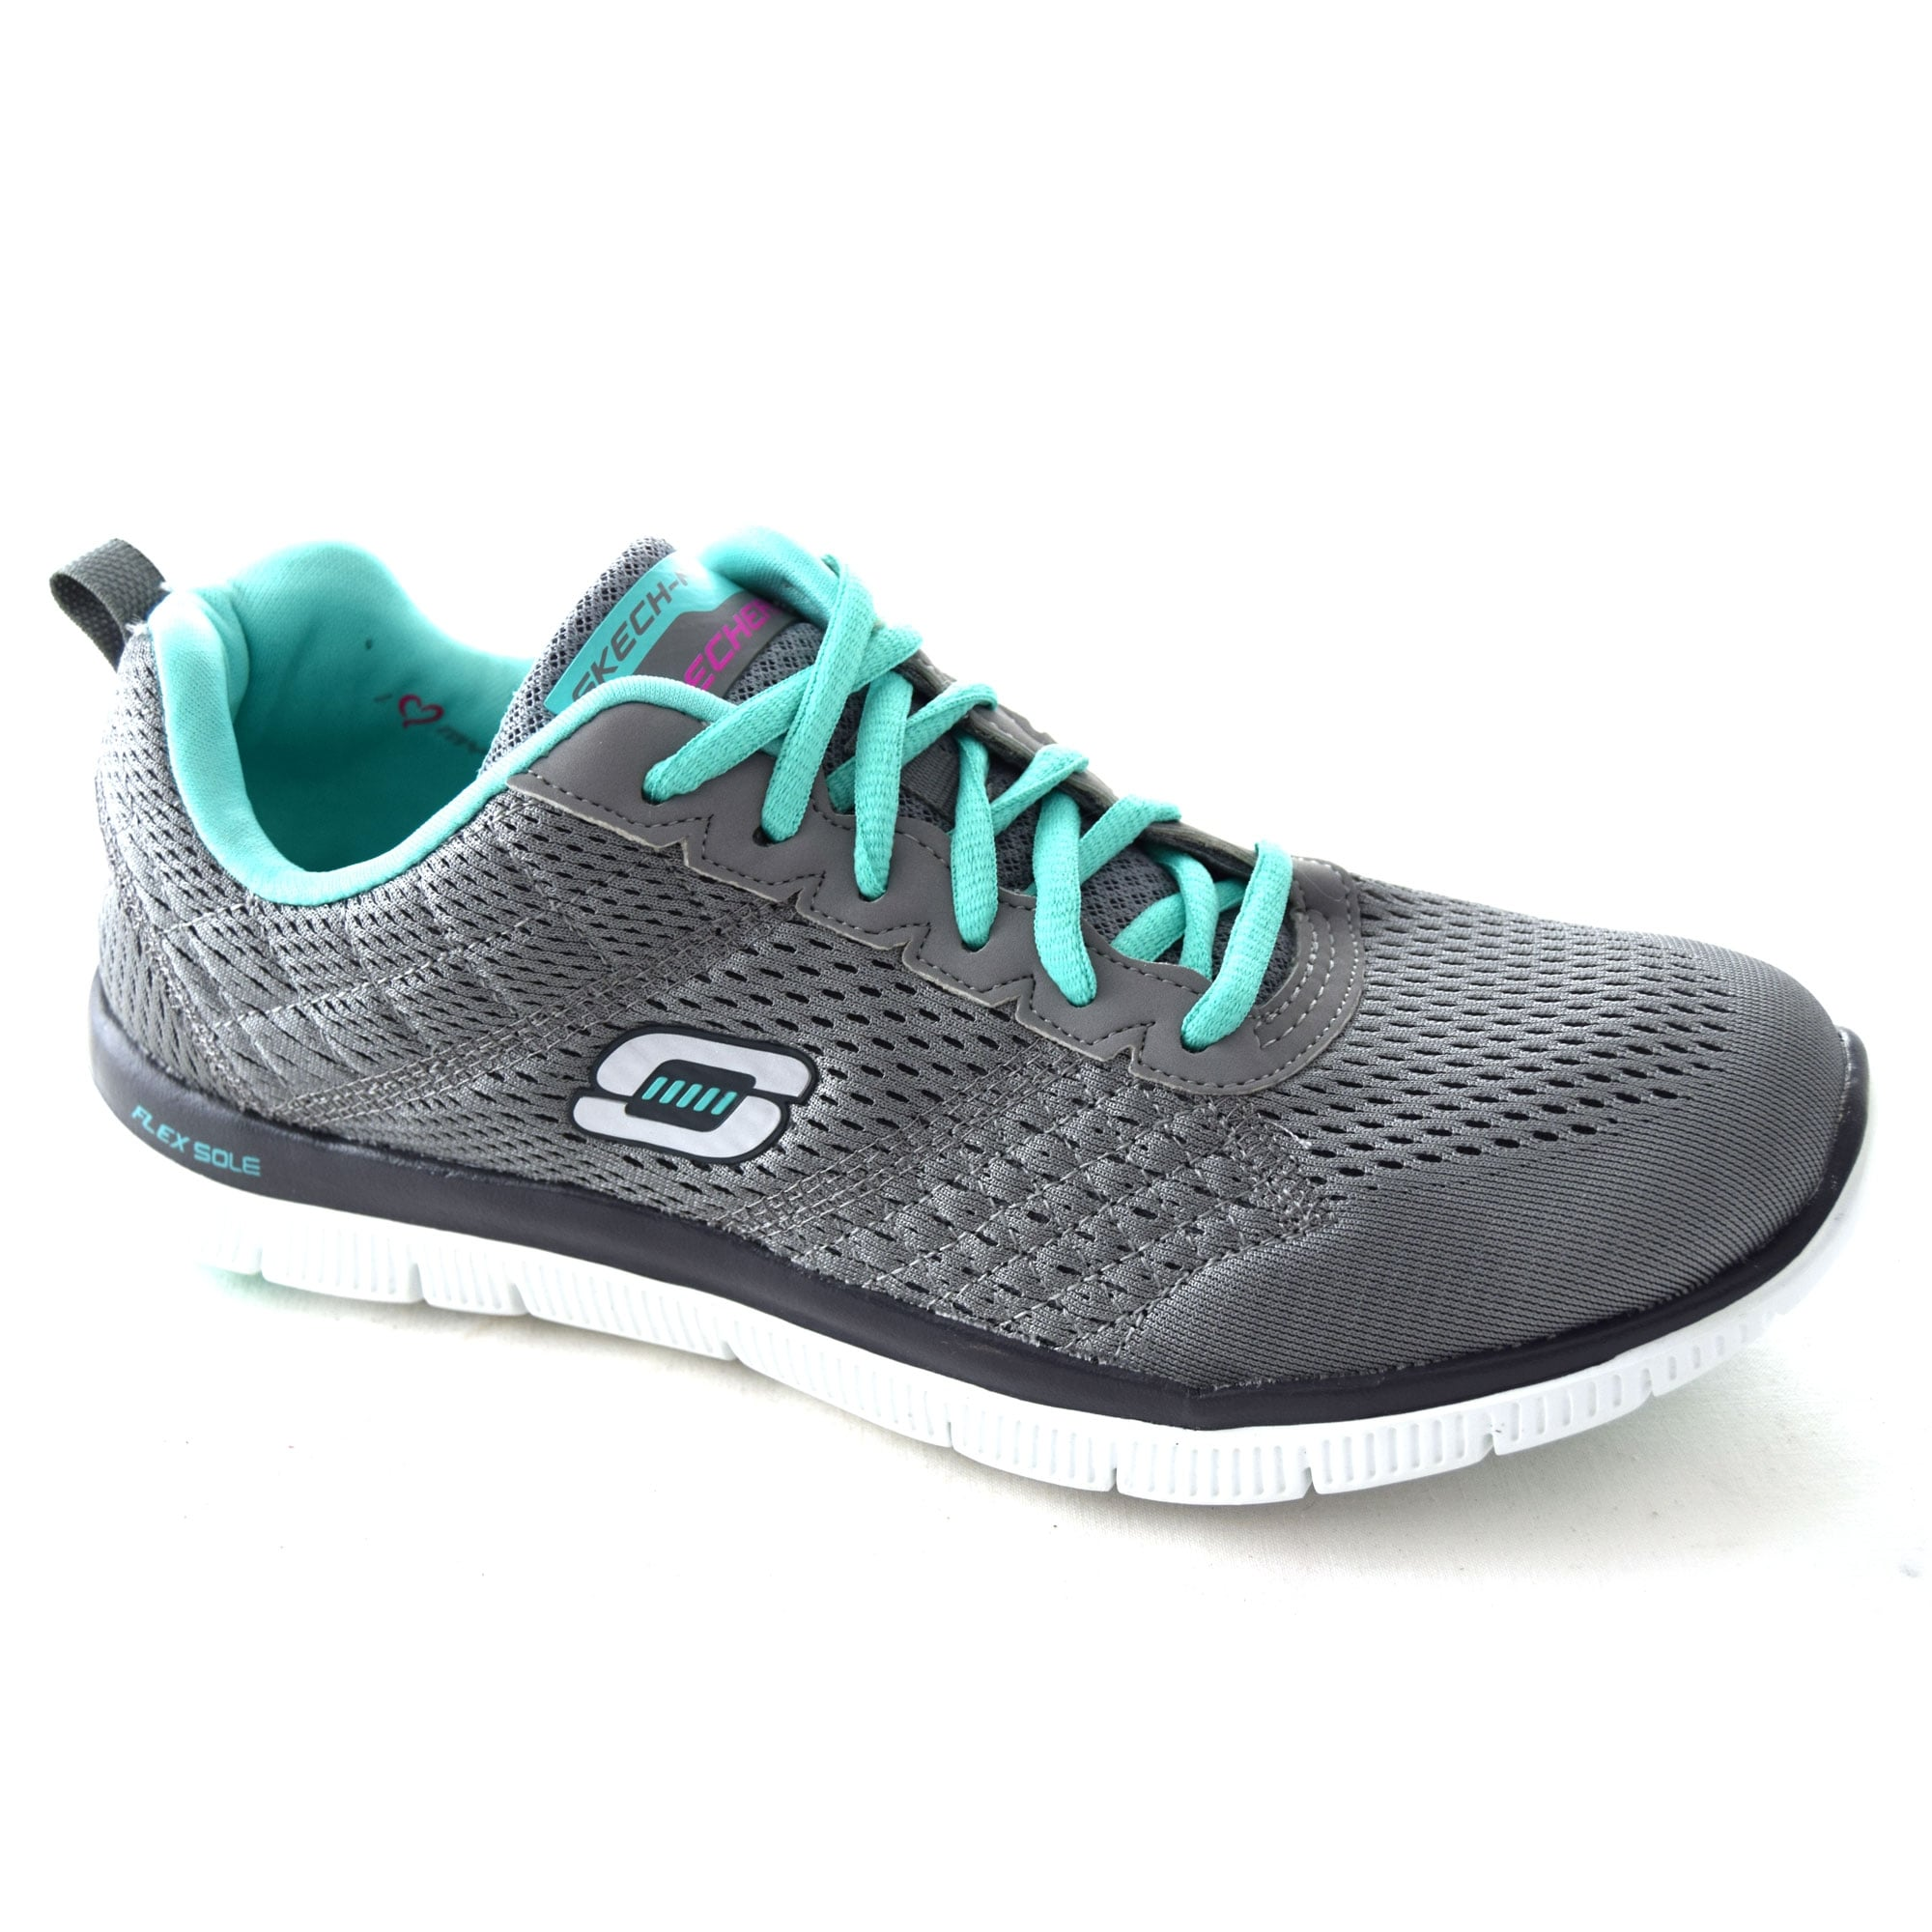 Skechers Flex Appeal Obvious Choice Trainers